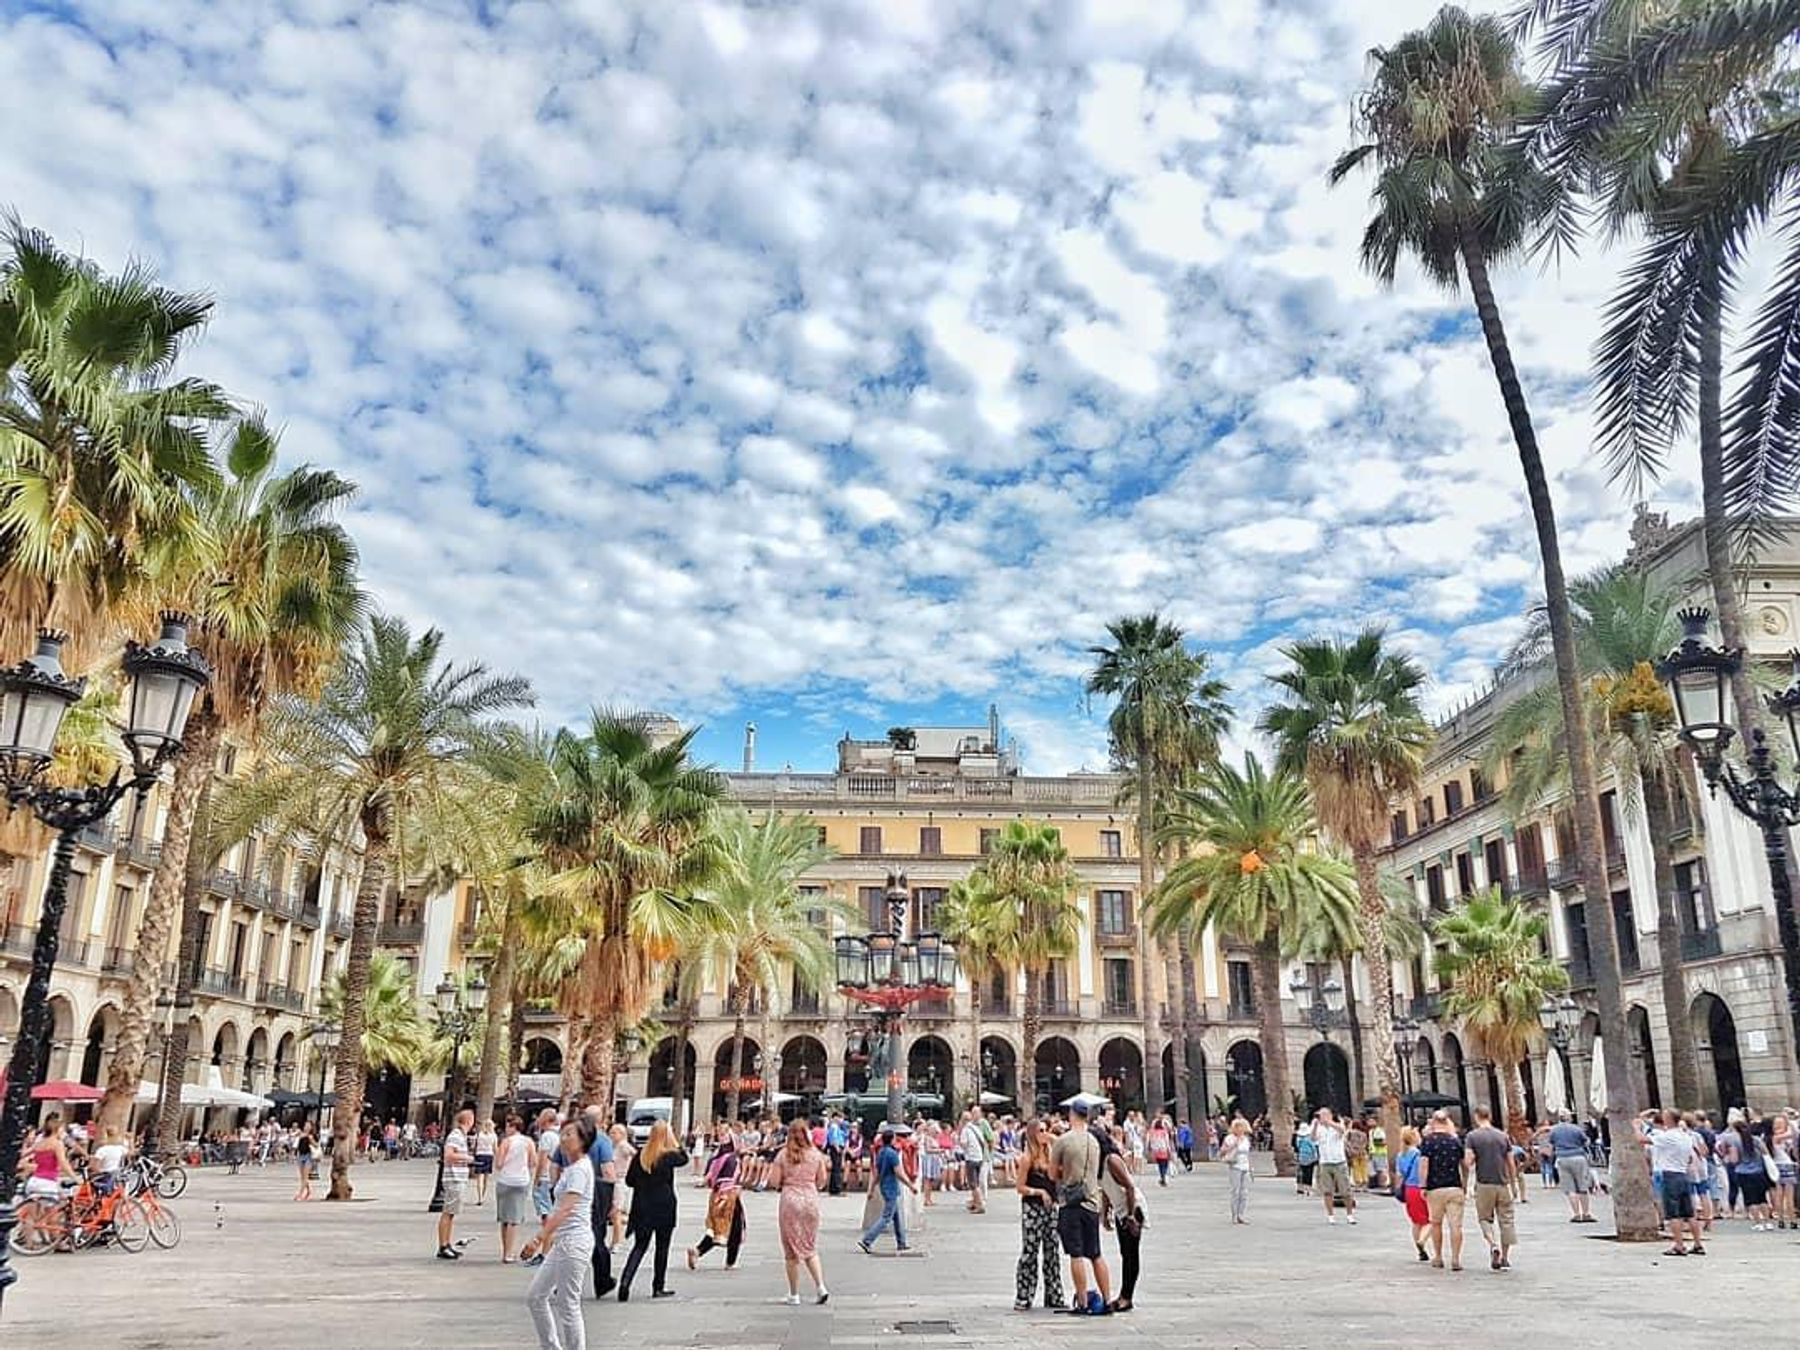 A square full people. Walking tours are one of the best free things to do in Barcelona